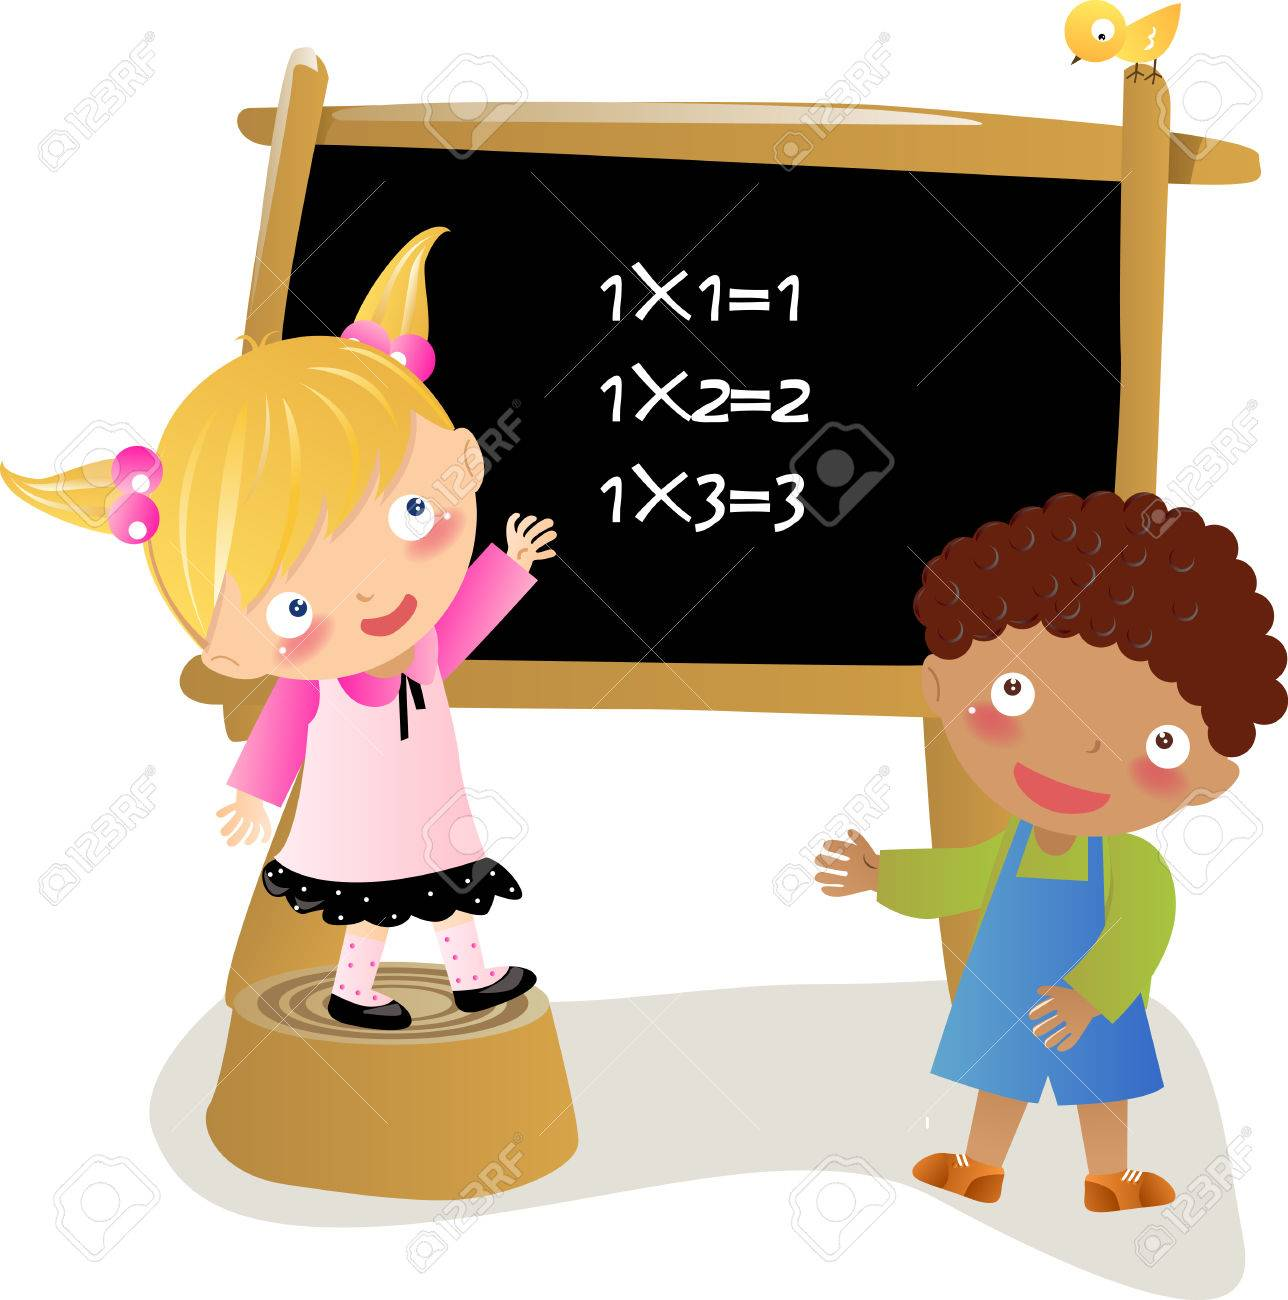 School Kids Learning Maths Royalty Free Cliparts, Vectors, And Stock ...